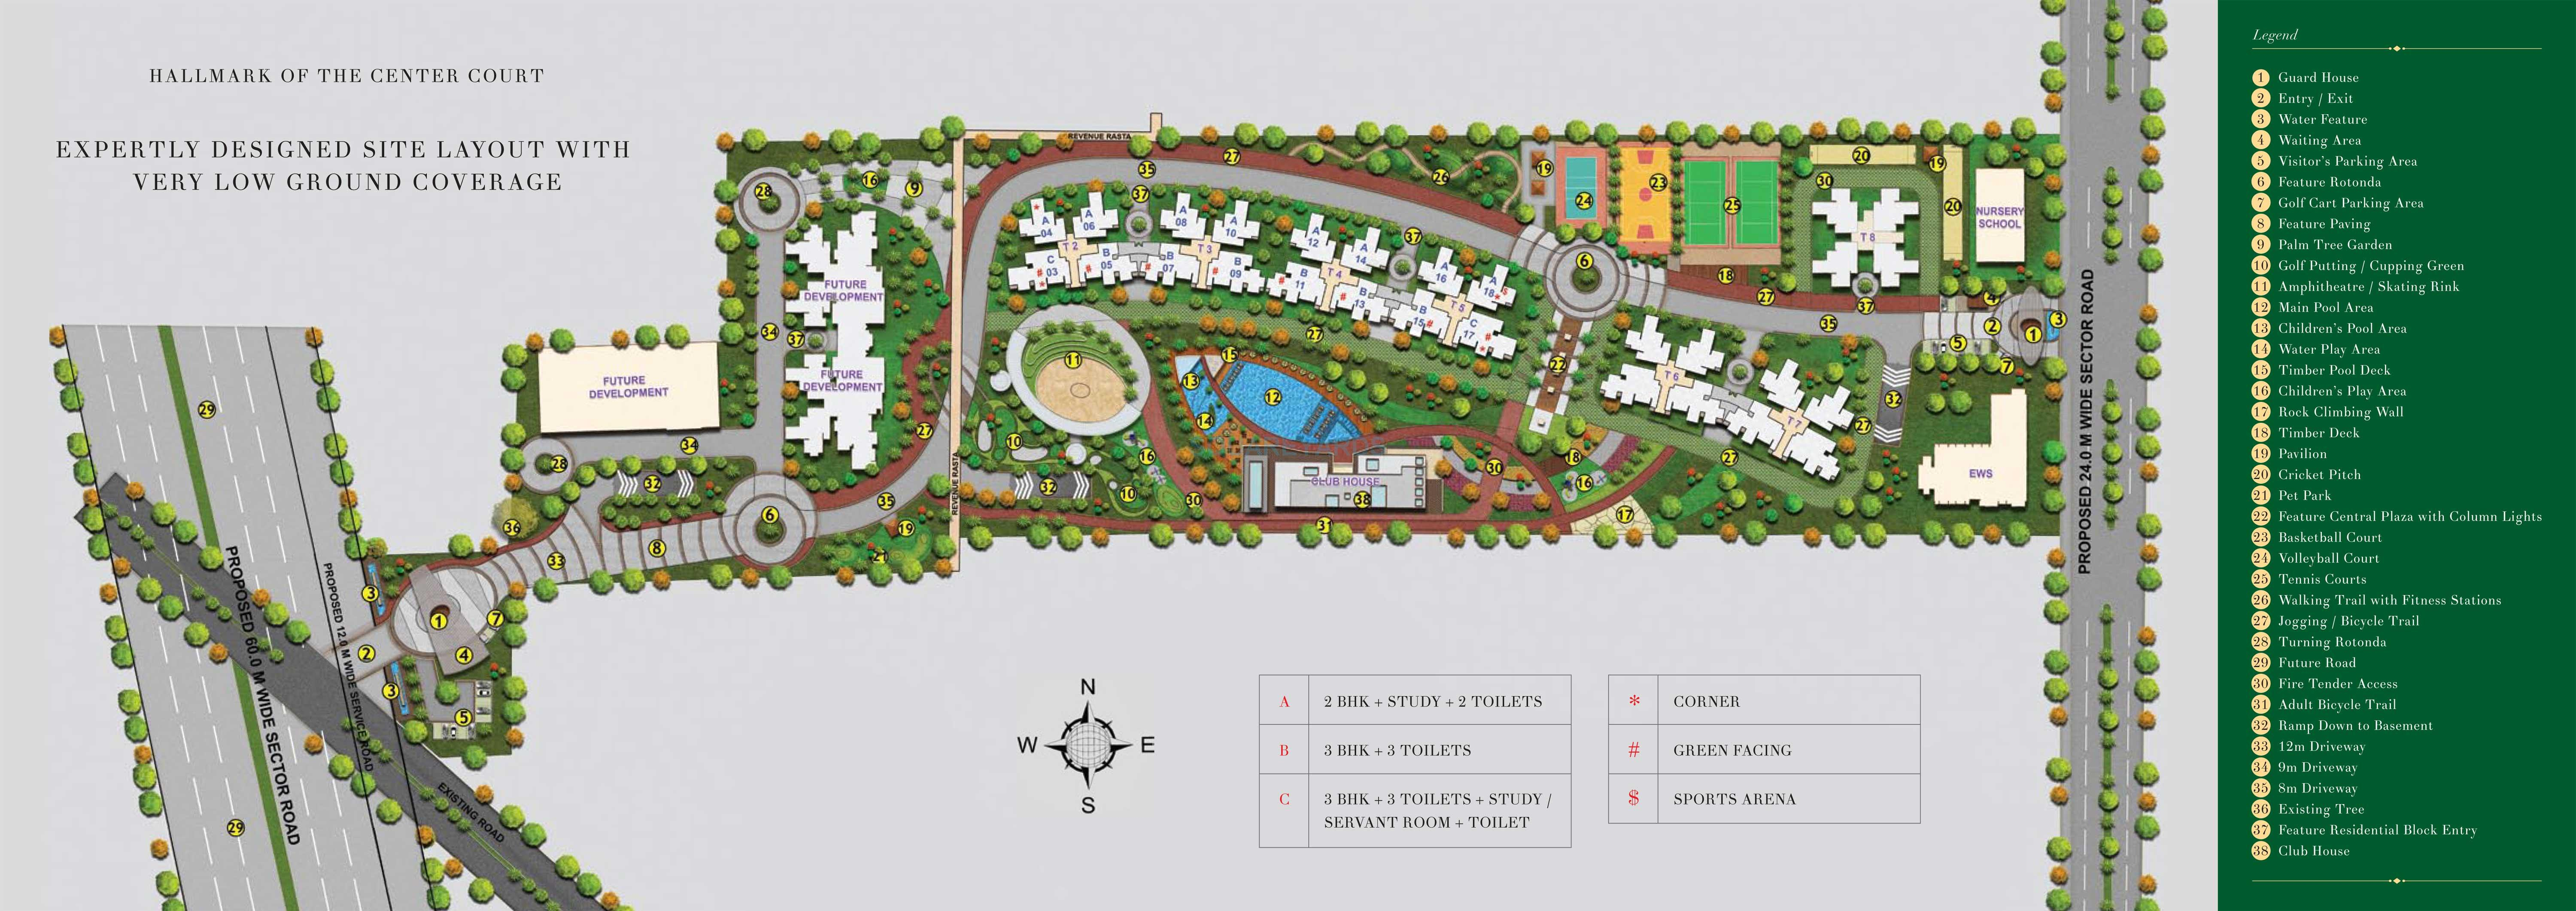 the center court sports residencies master plan image1